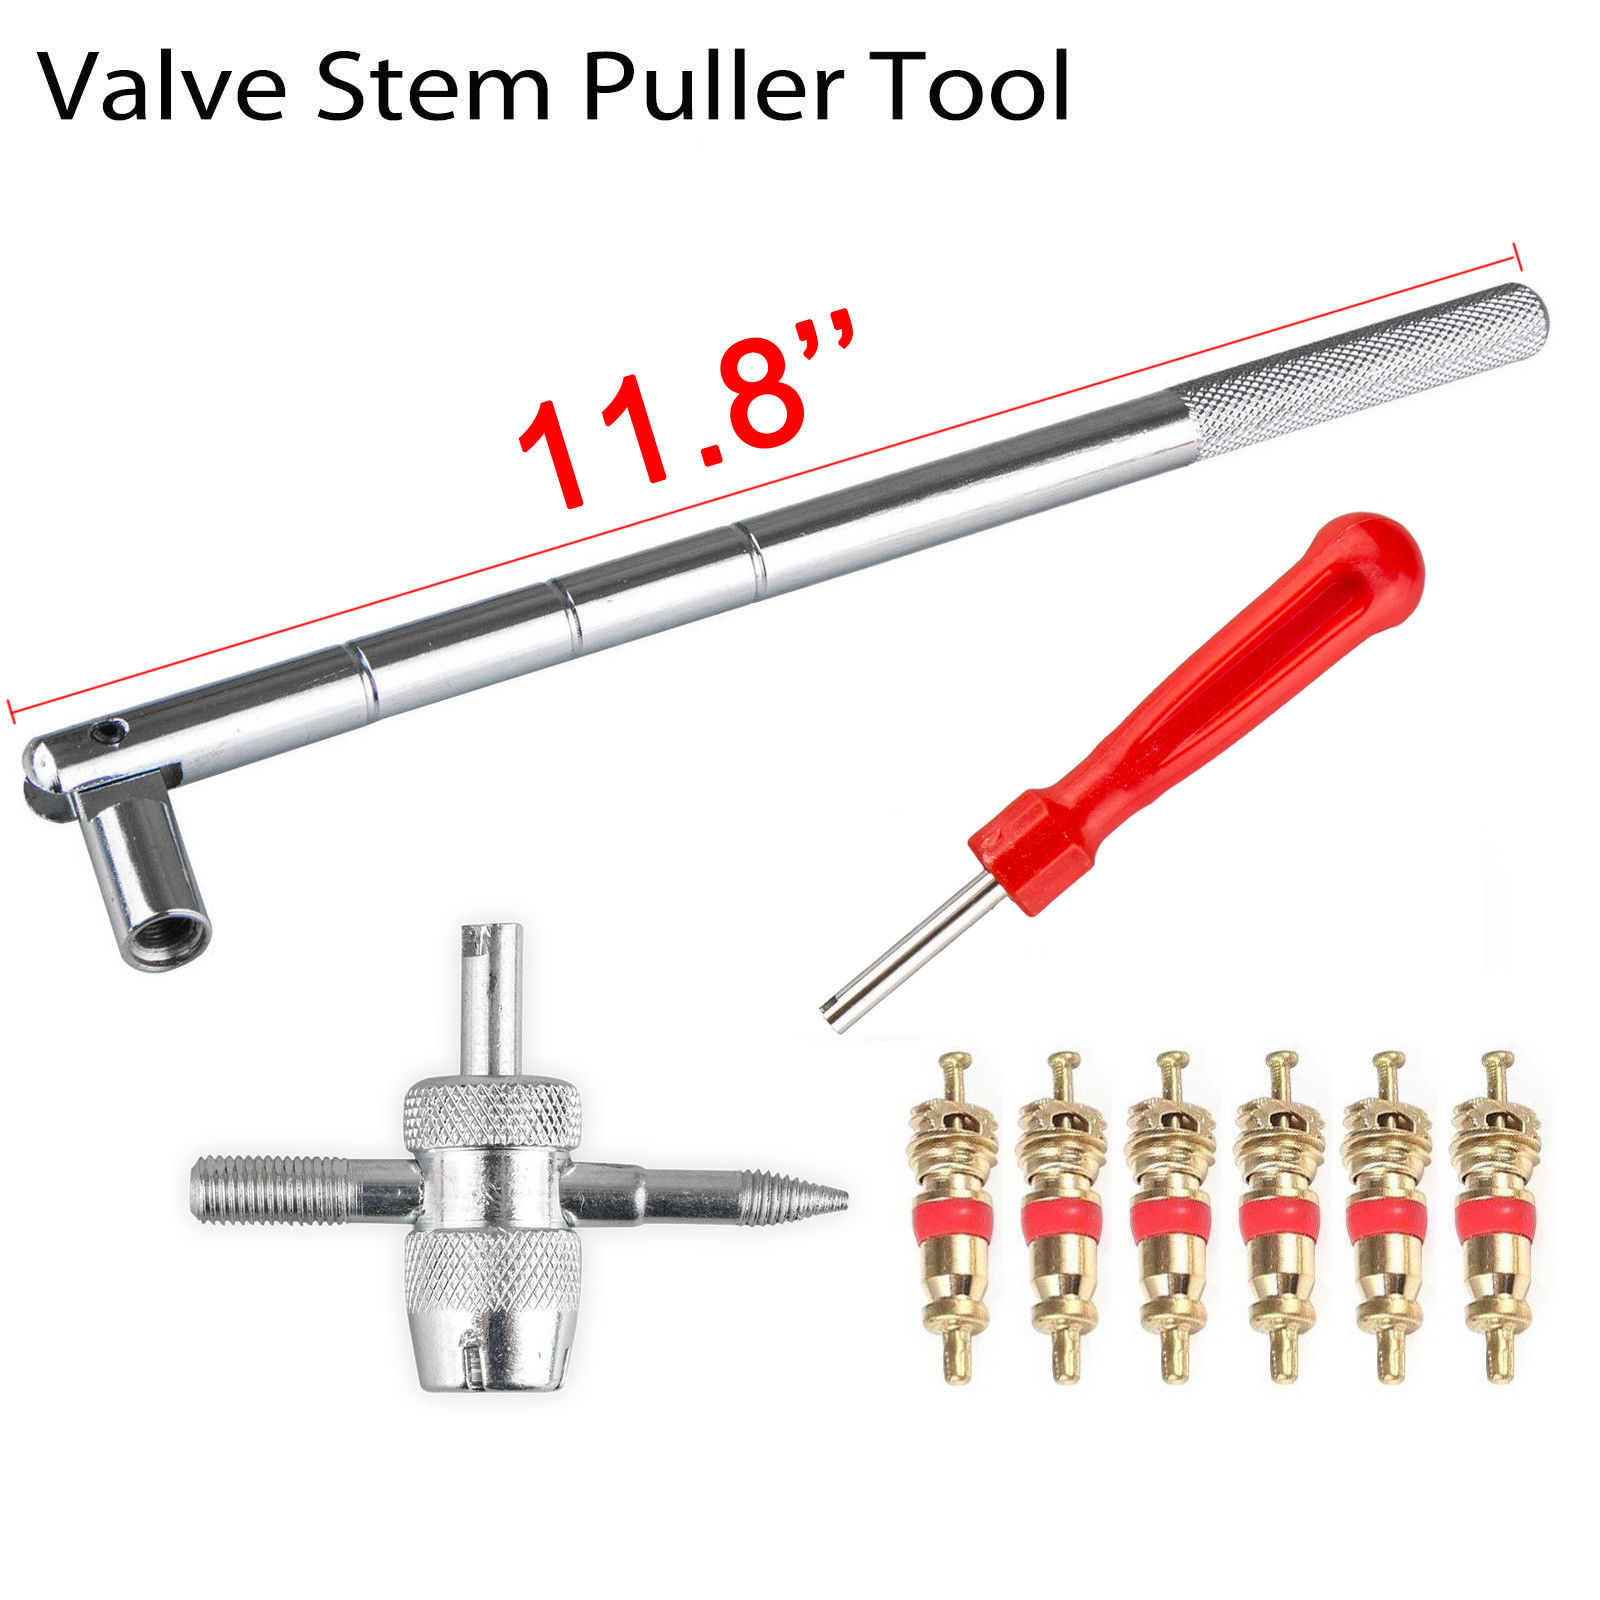 Bicycle Car Tire Plug Metal 300mm Value Stem Puller Tool Valve Stem Installer C